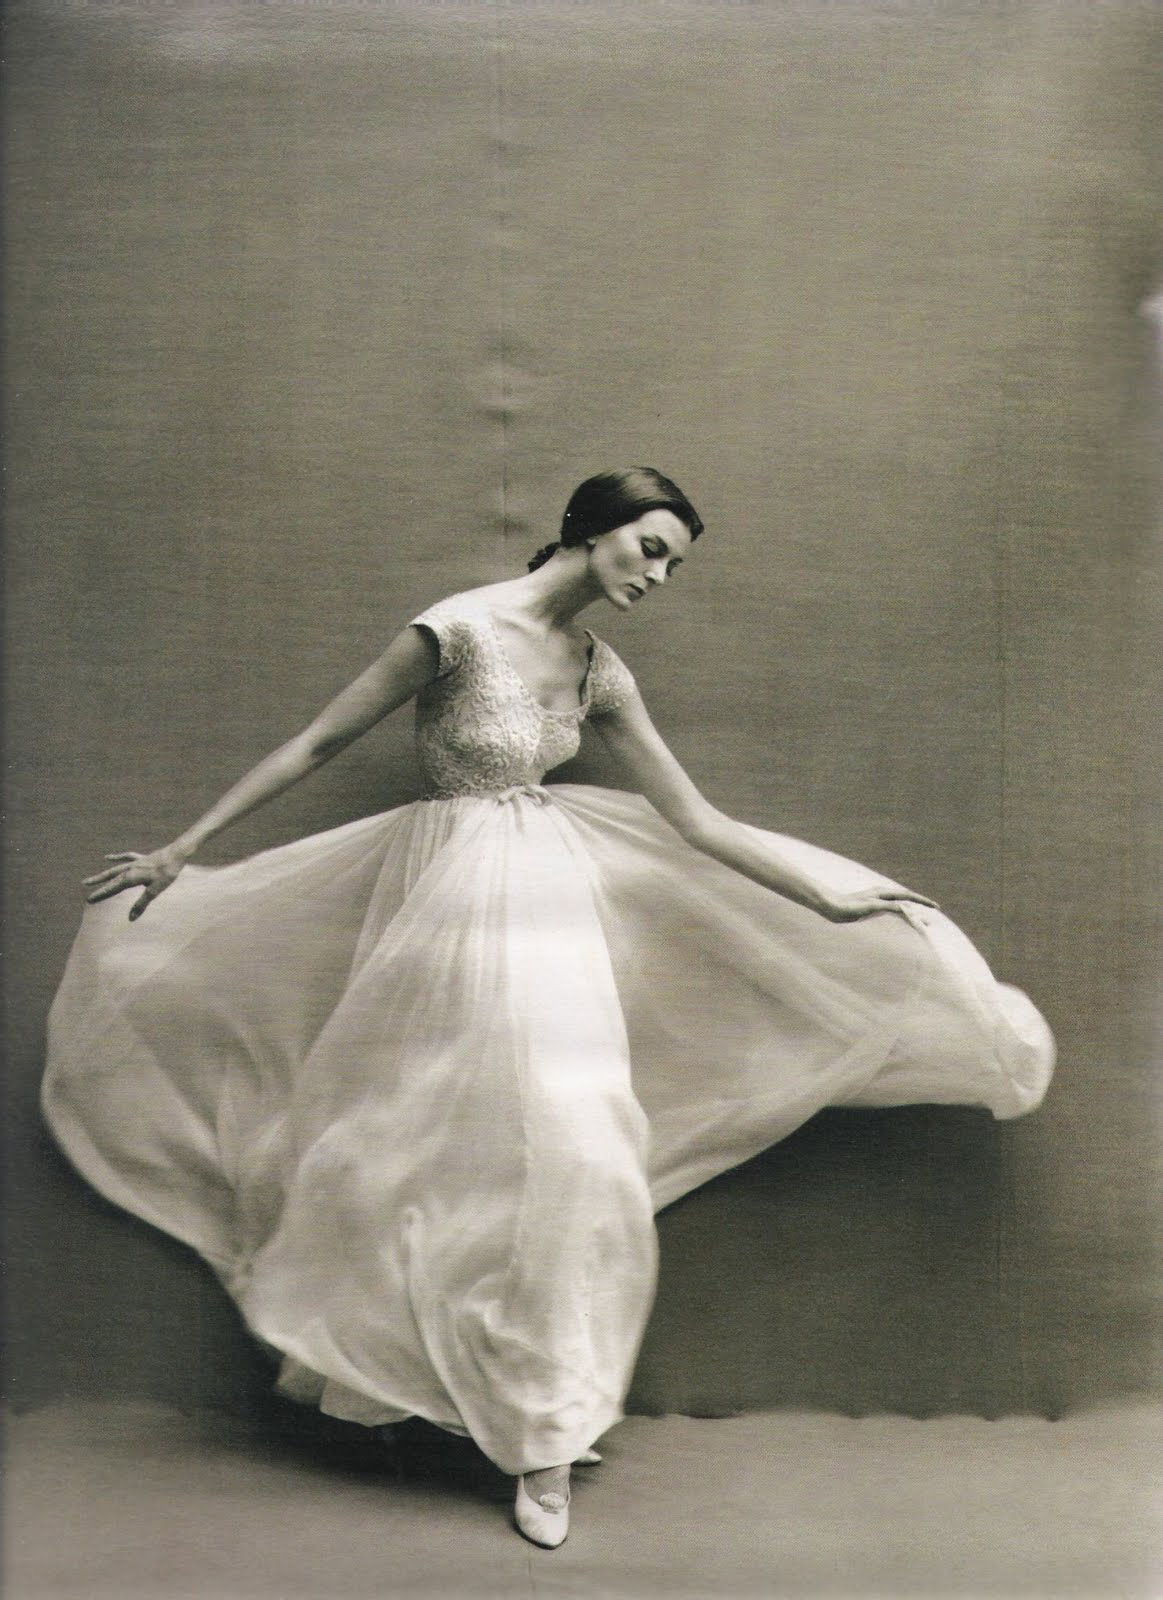 via fashioned by love | Carmen Dell'Orefice by Richard Avedon in Harper's Bazaar October 1957 | Carmen Dell'Orefice biography